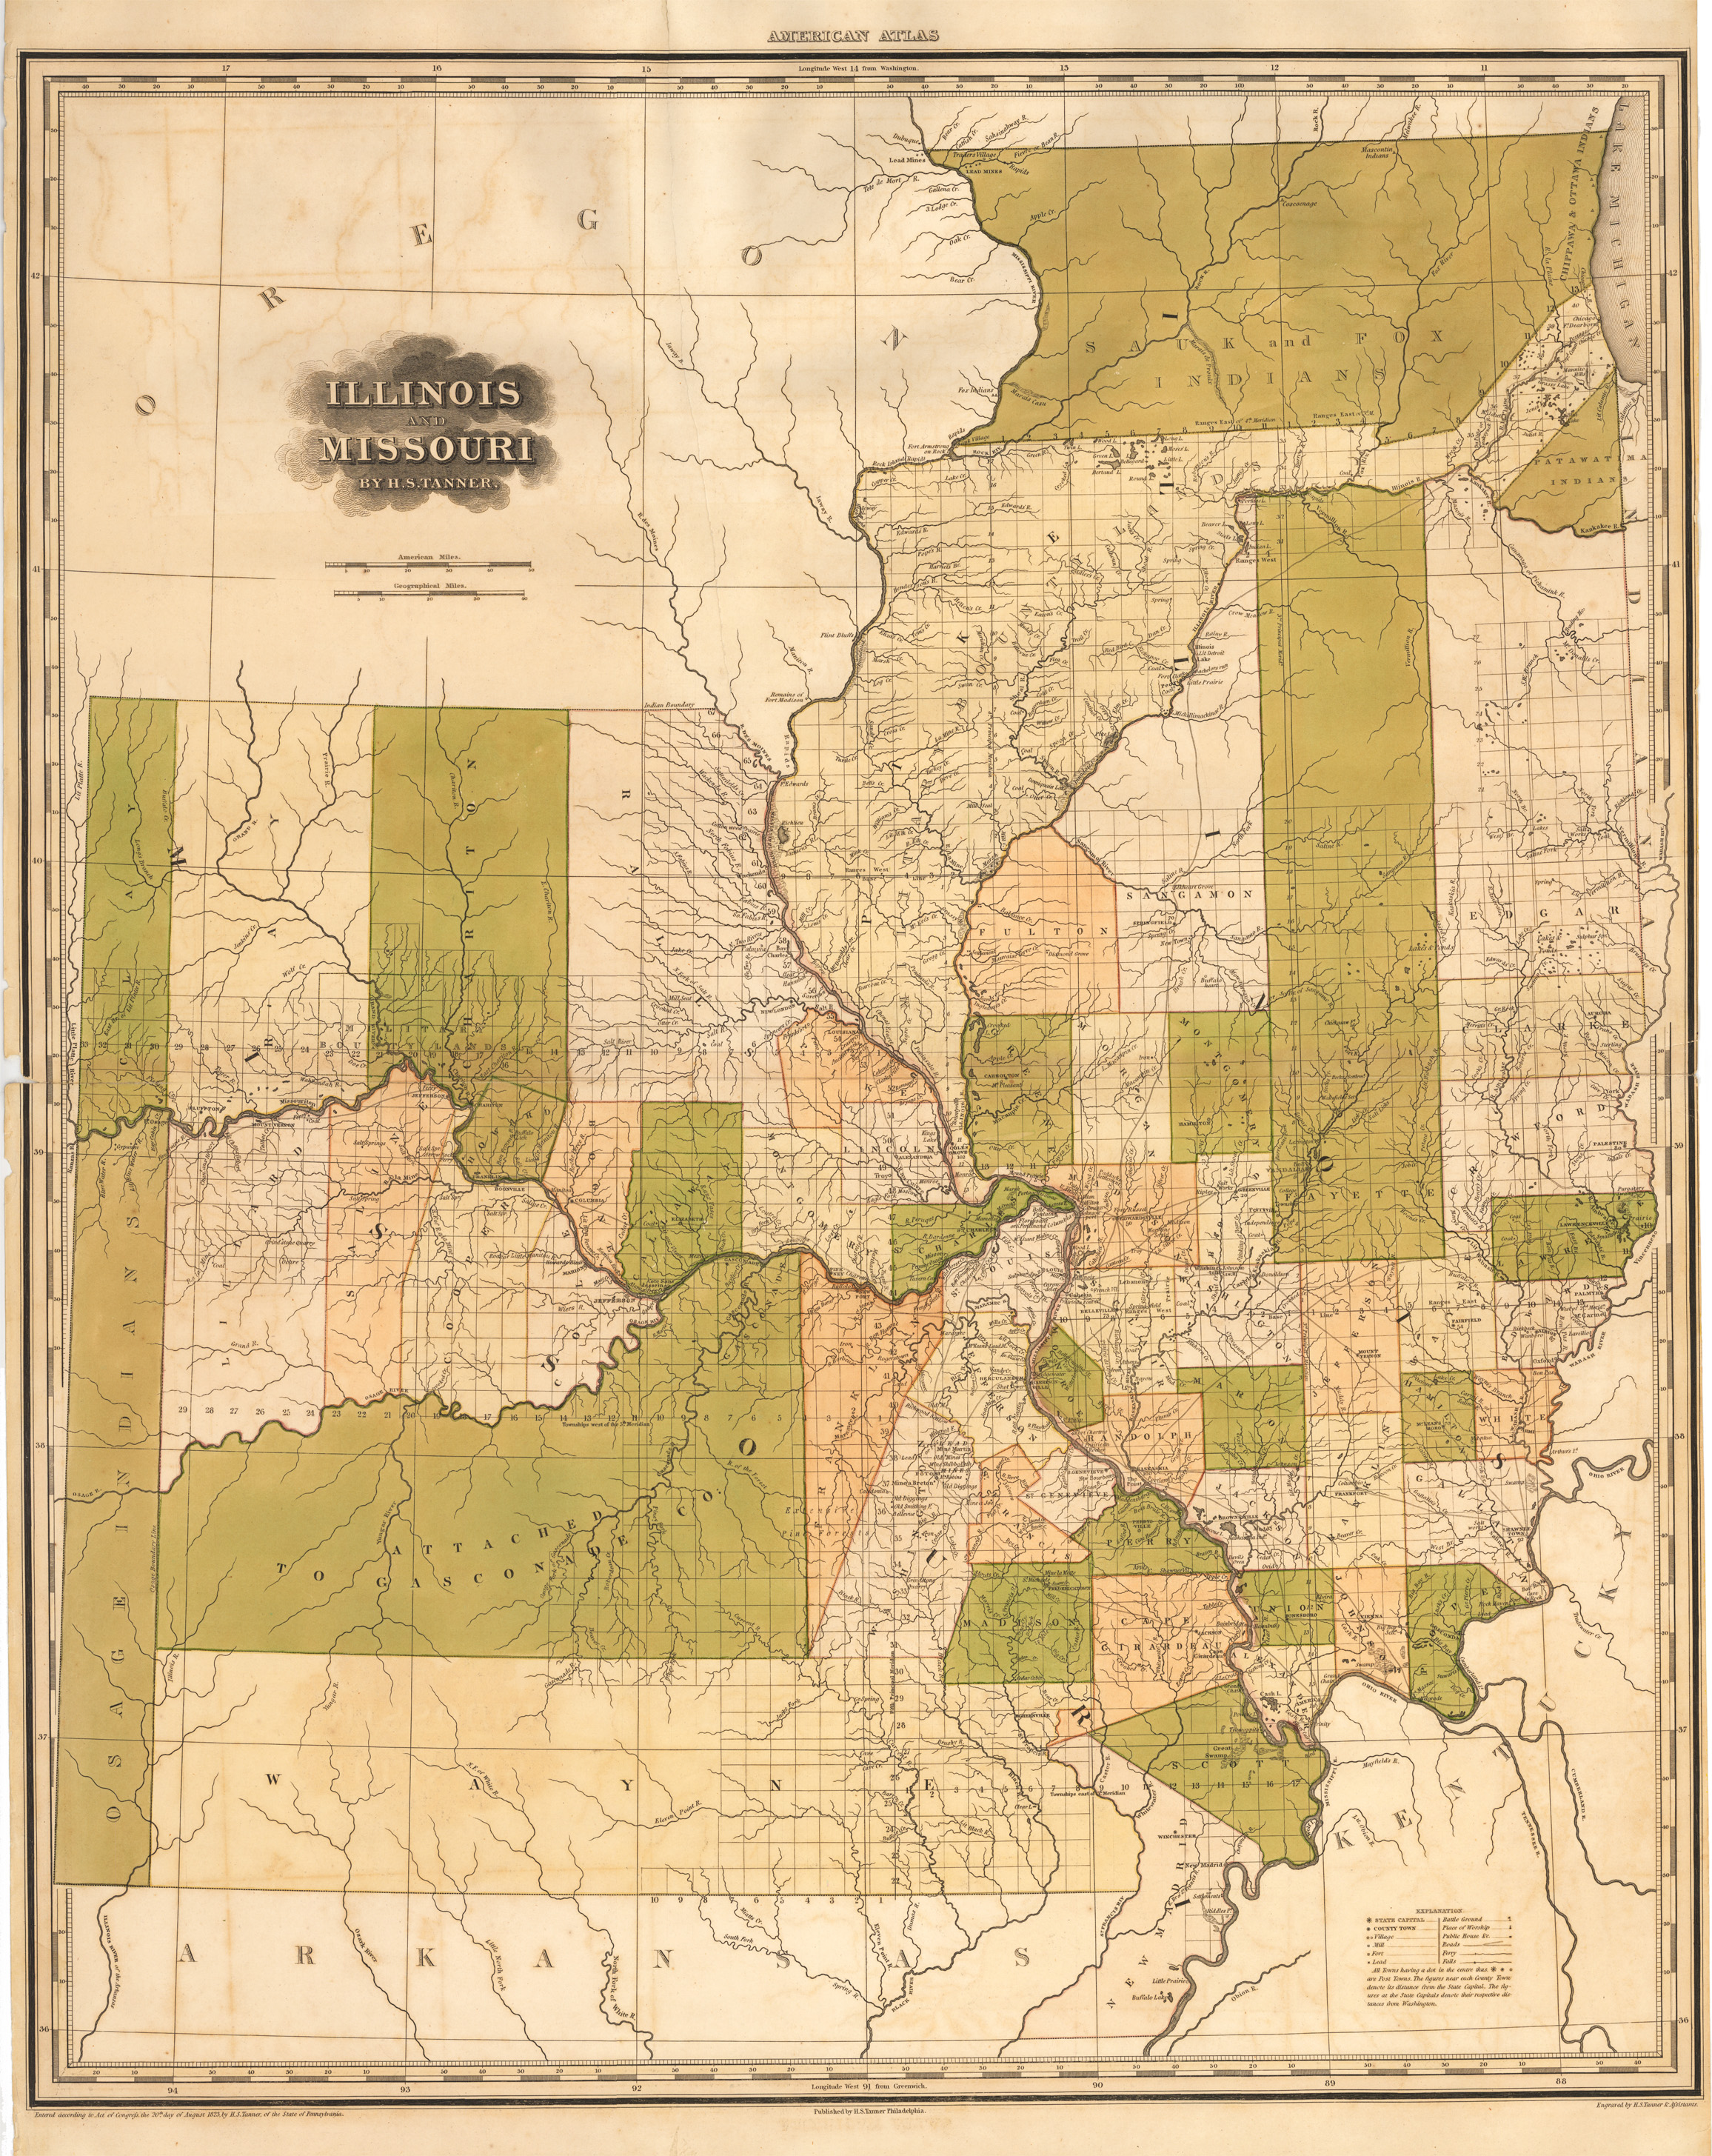 Antique map of illinois and missouri by hs tanner 1823 hjbmaps high resolution image gumiabroncs Gallery